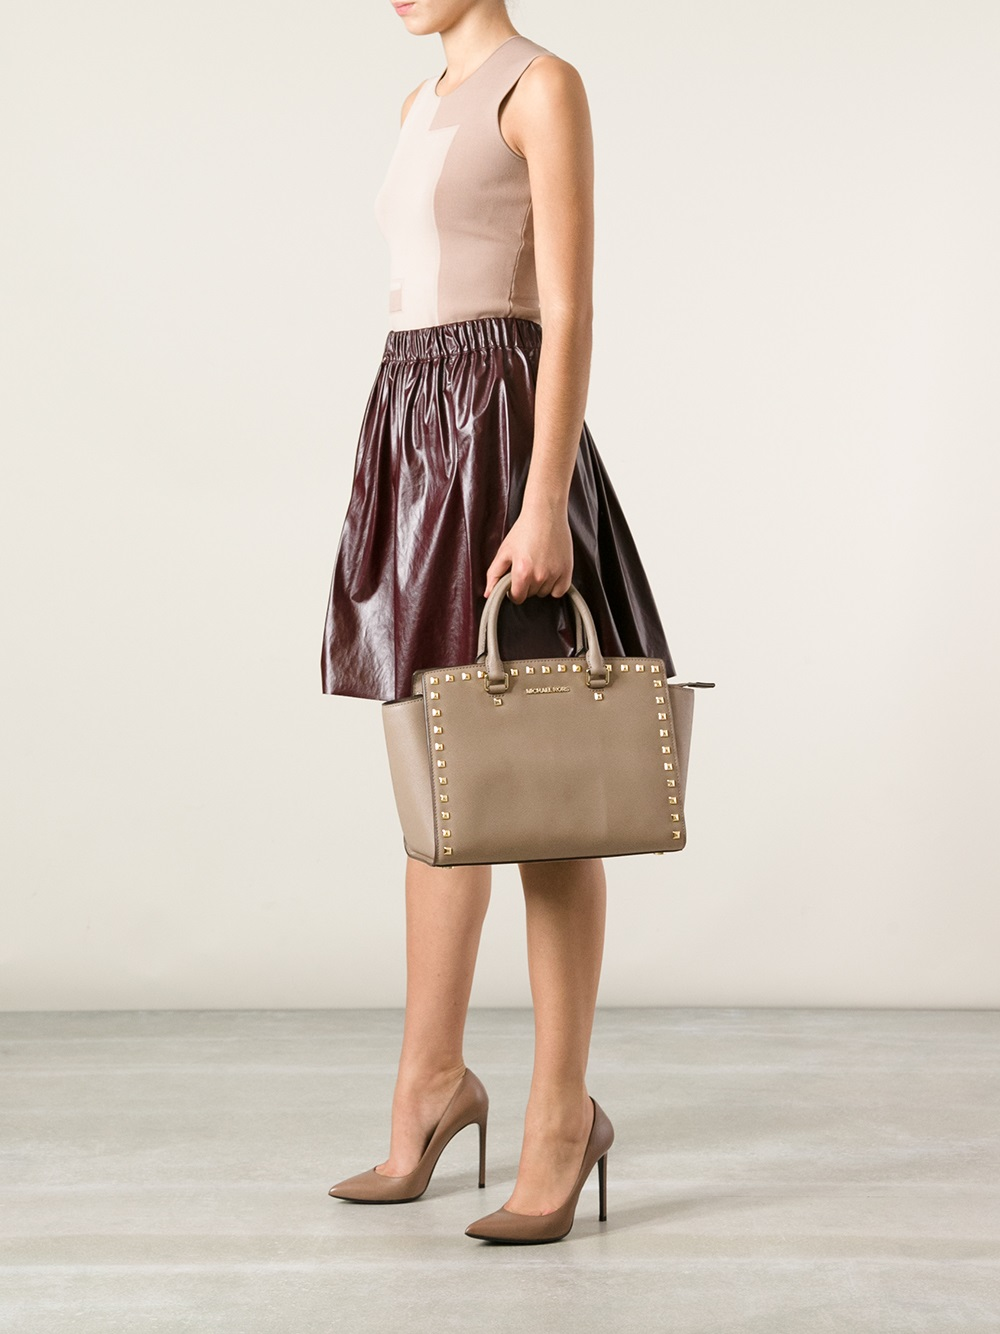 293c28713fb0 ... Satchel Michael Michael Kors Selma Medium Tote in Natural - Lyst ...